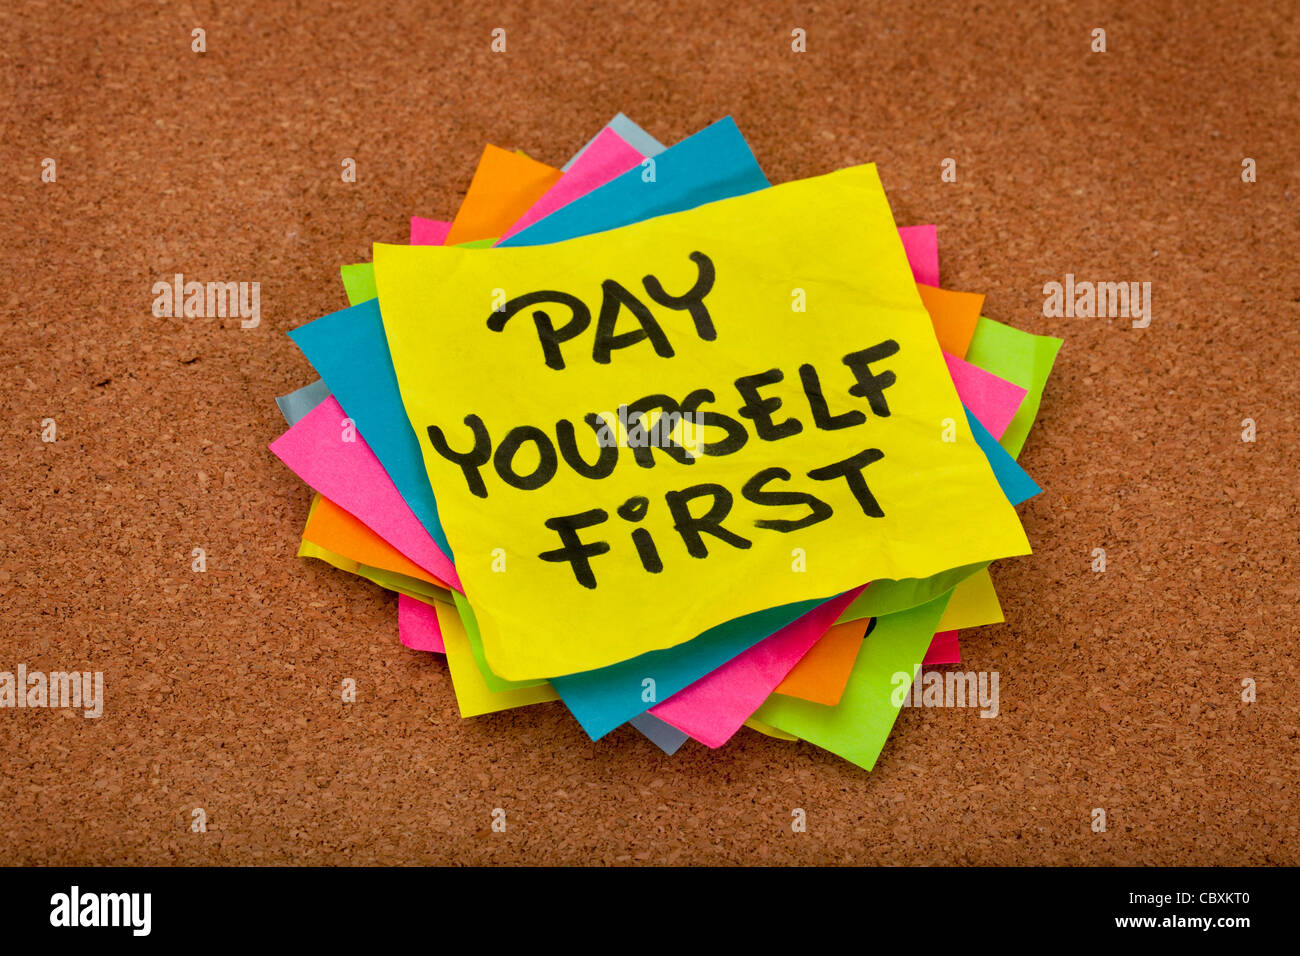 pay yourself first, a reminder of personal finance strategy - stack of colorful sticky notes on a cork bulletin - Stock Image